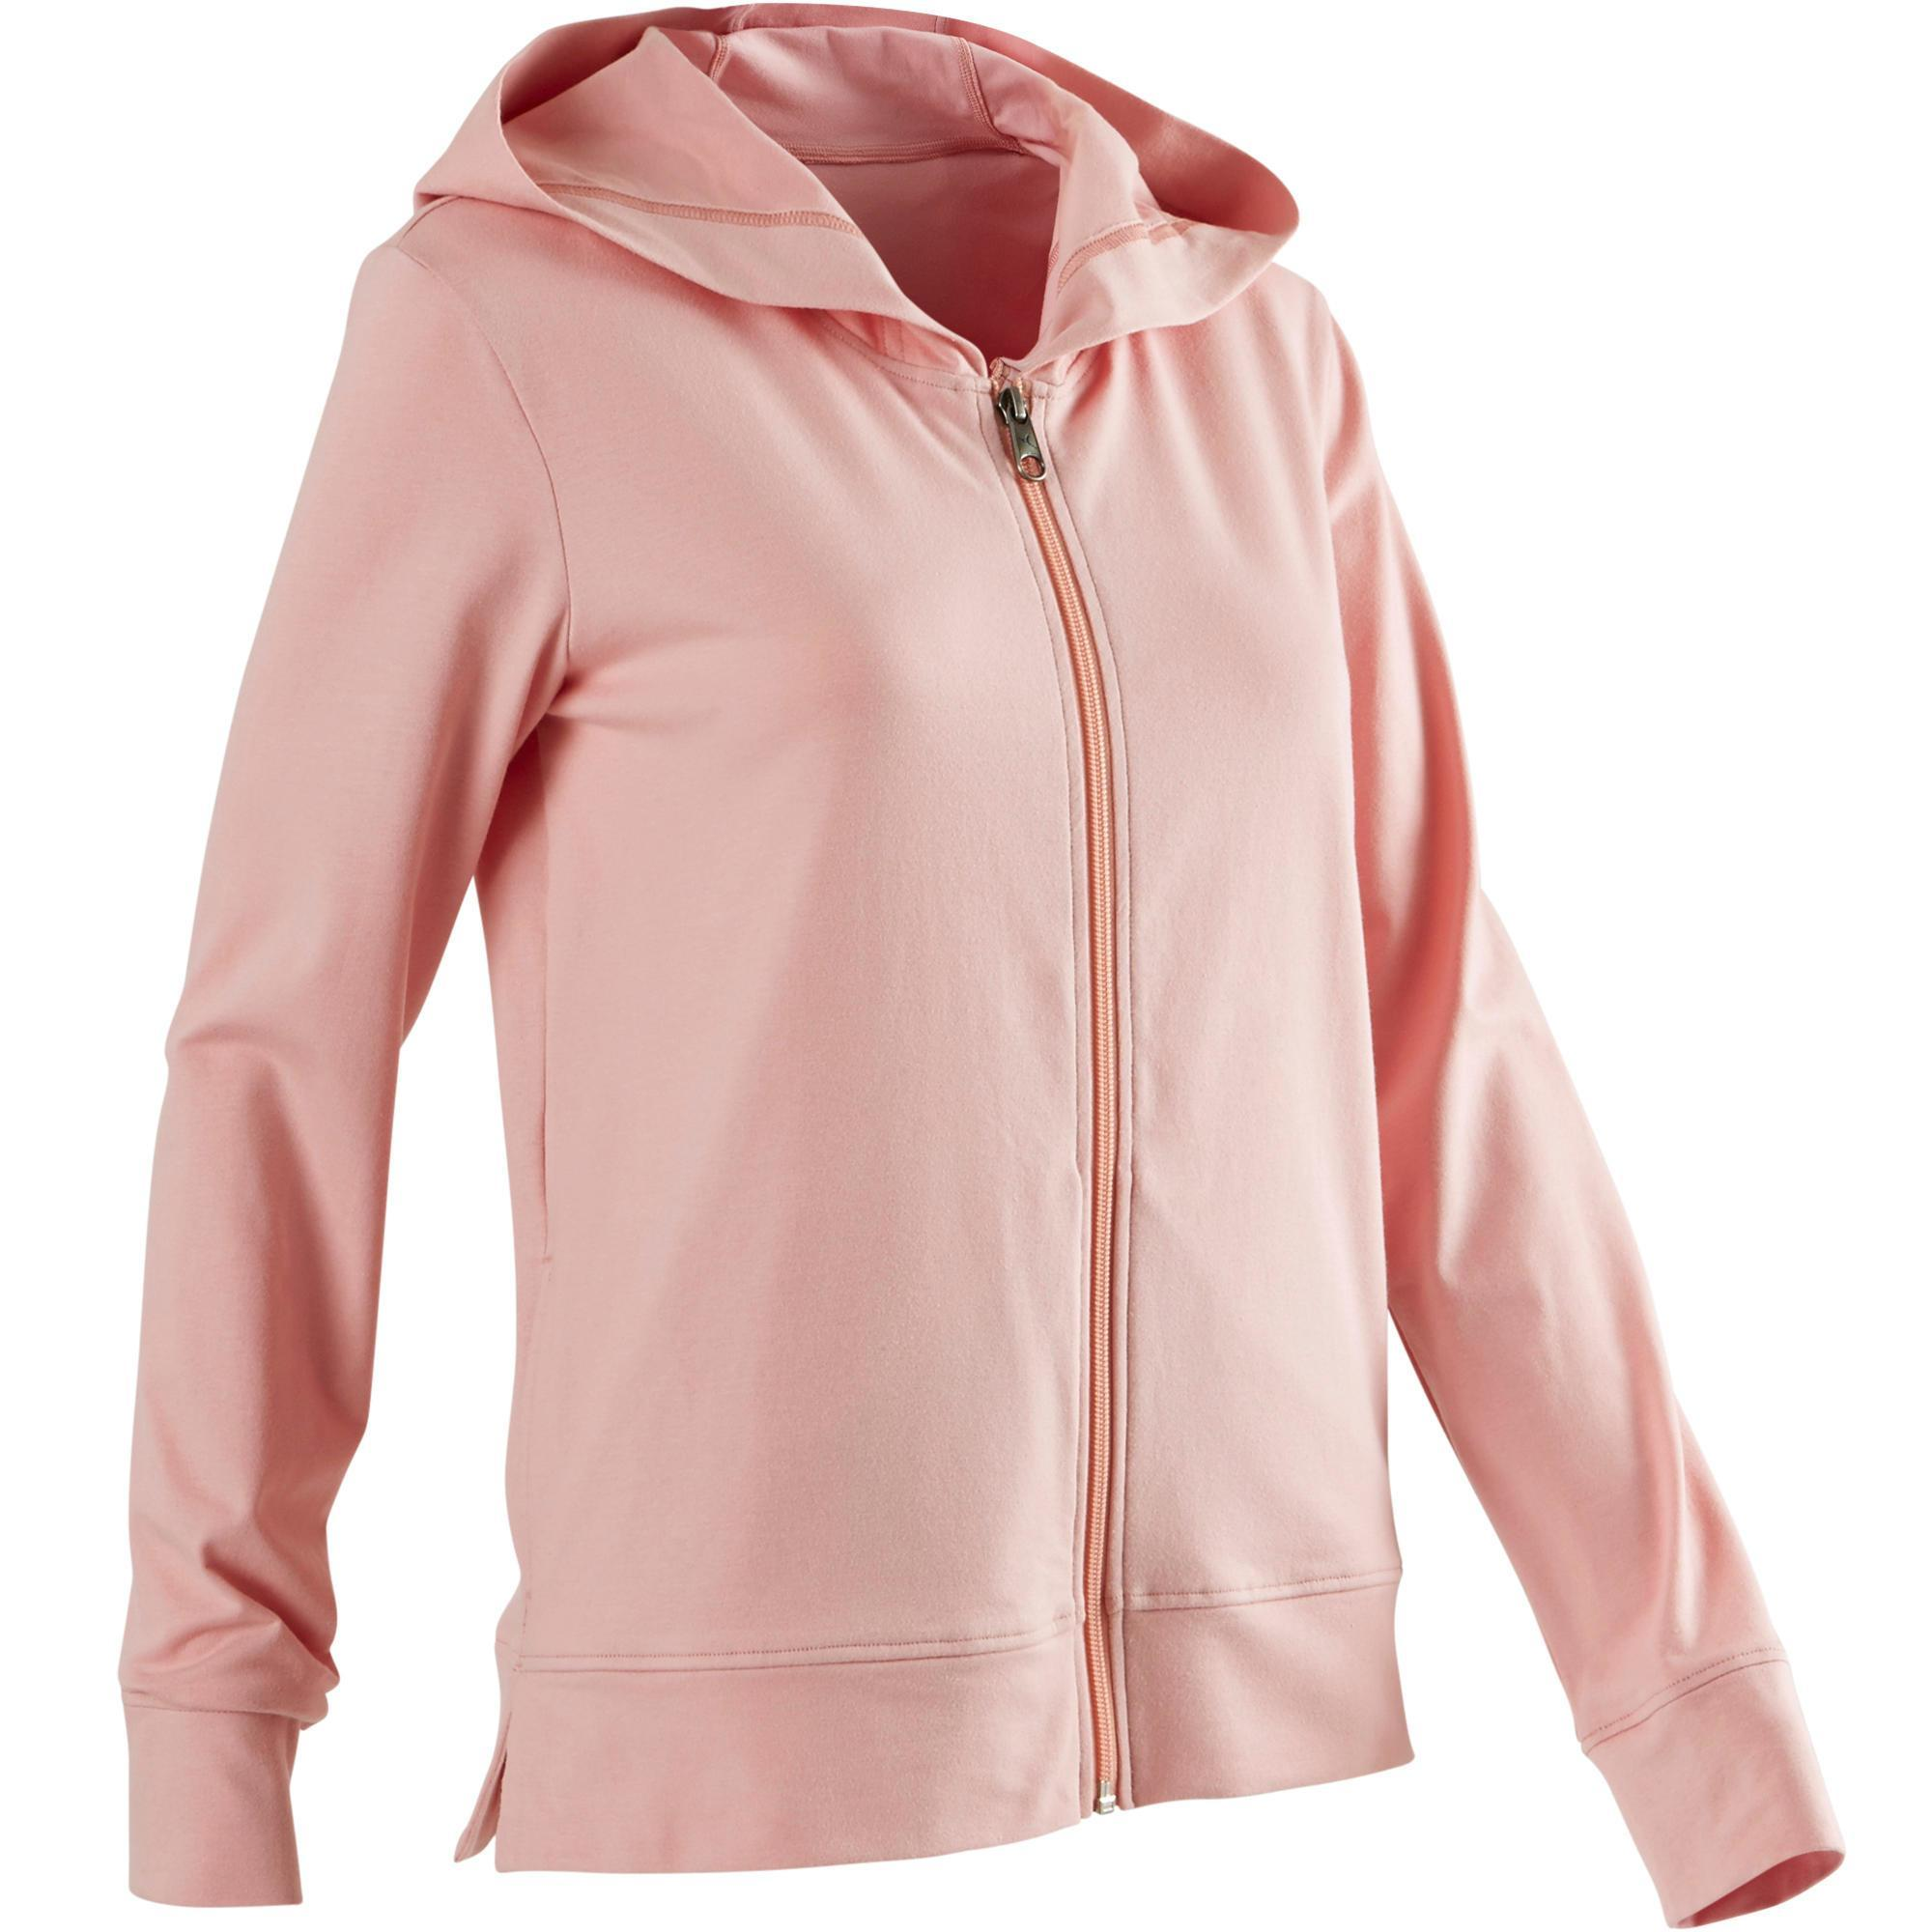 Capuche Femme Rose Veste 100 Douce Vêtements Gym Pilates qGUMpzSV